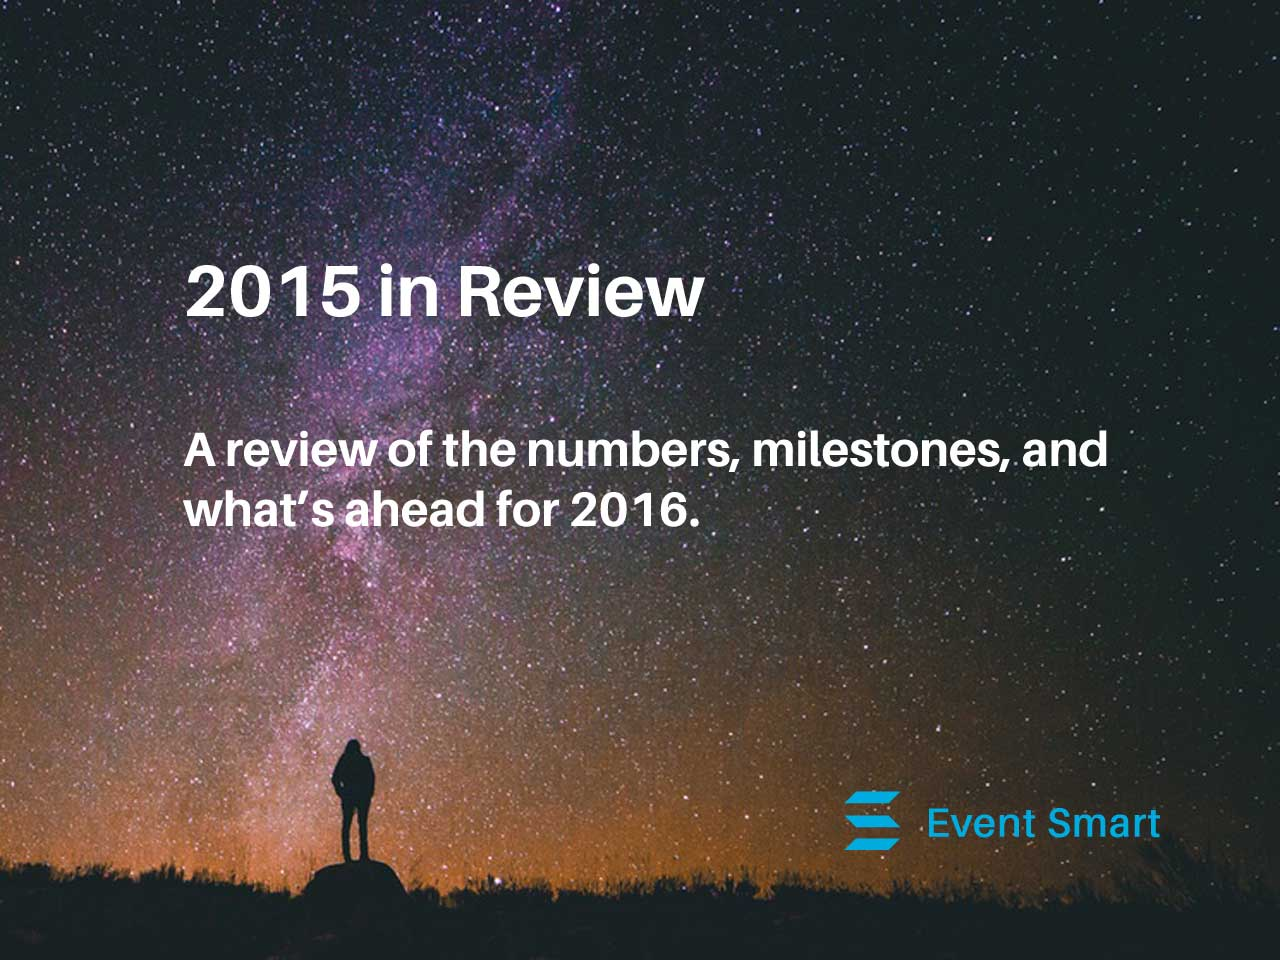 2015 Event Smart review of the numbers, milestones and what is coming in 2016.